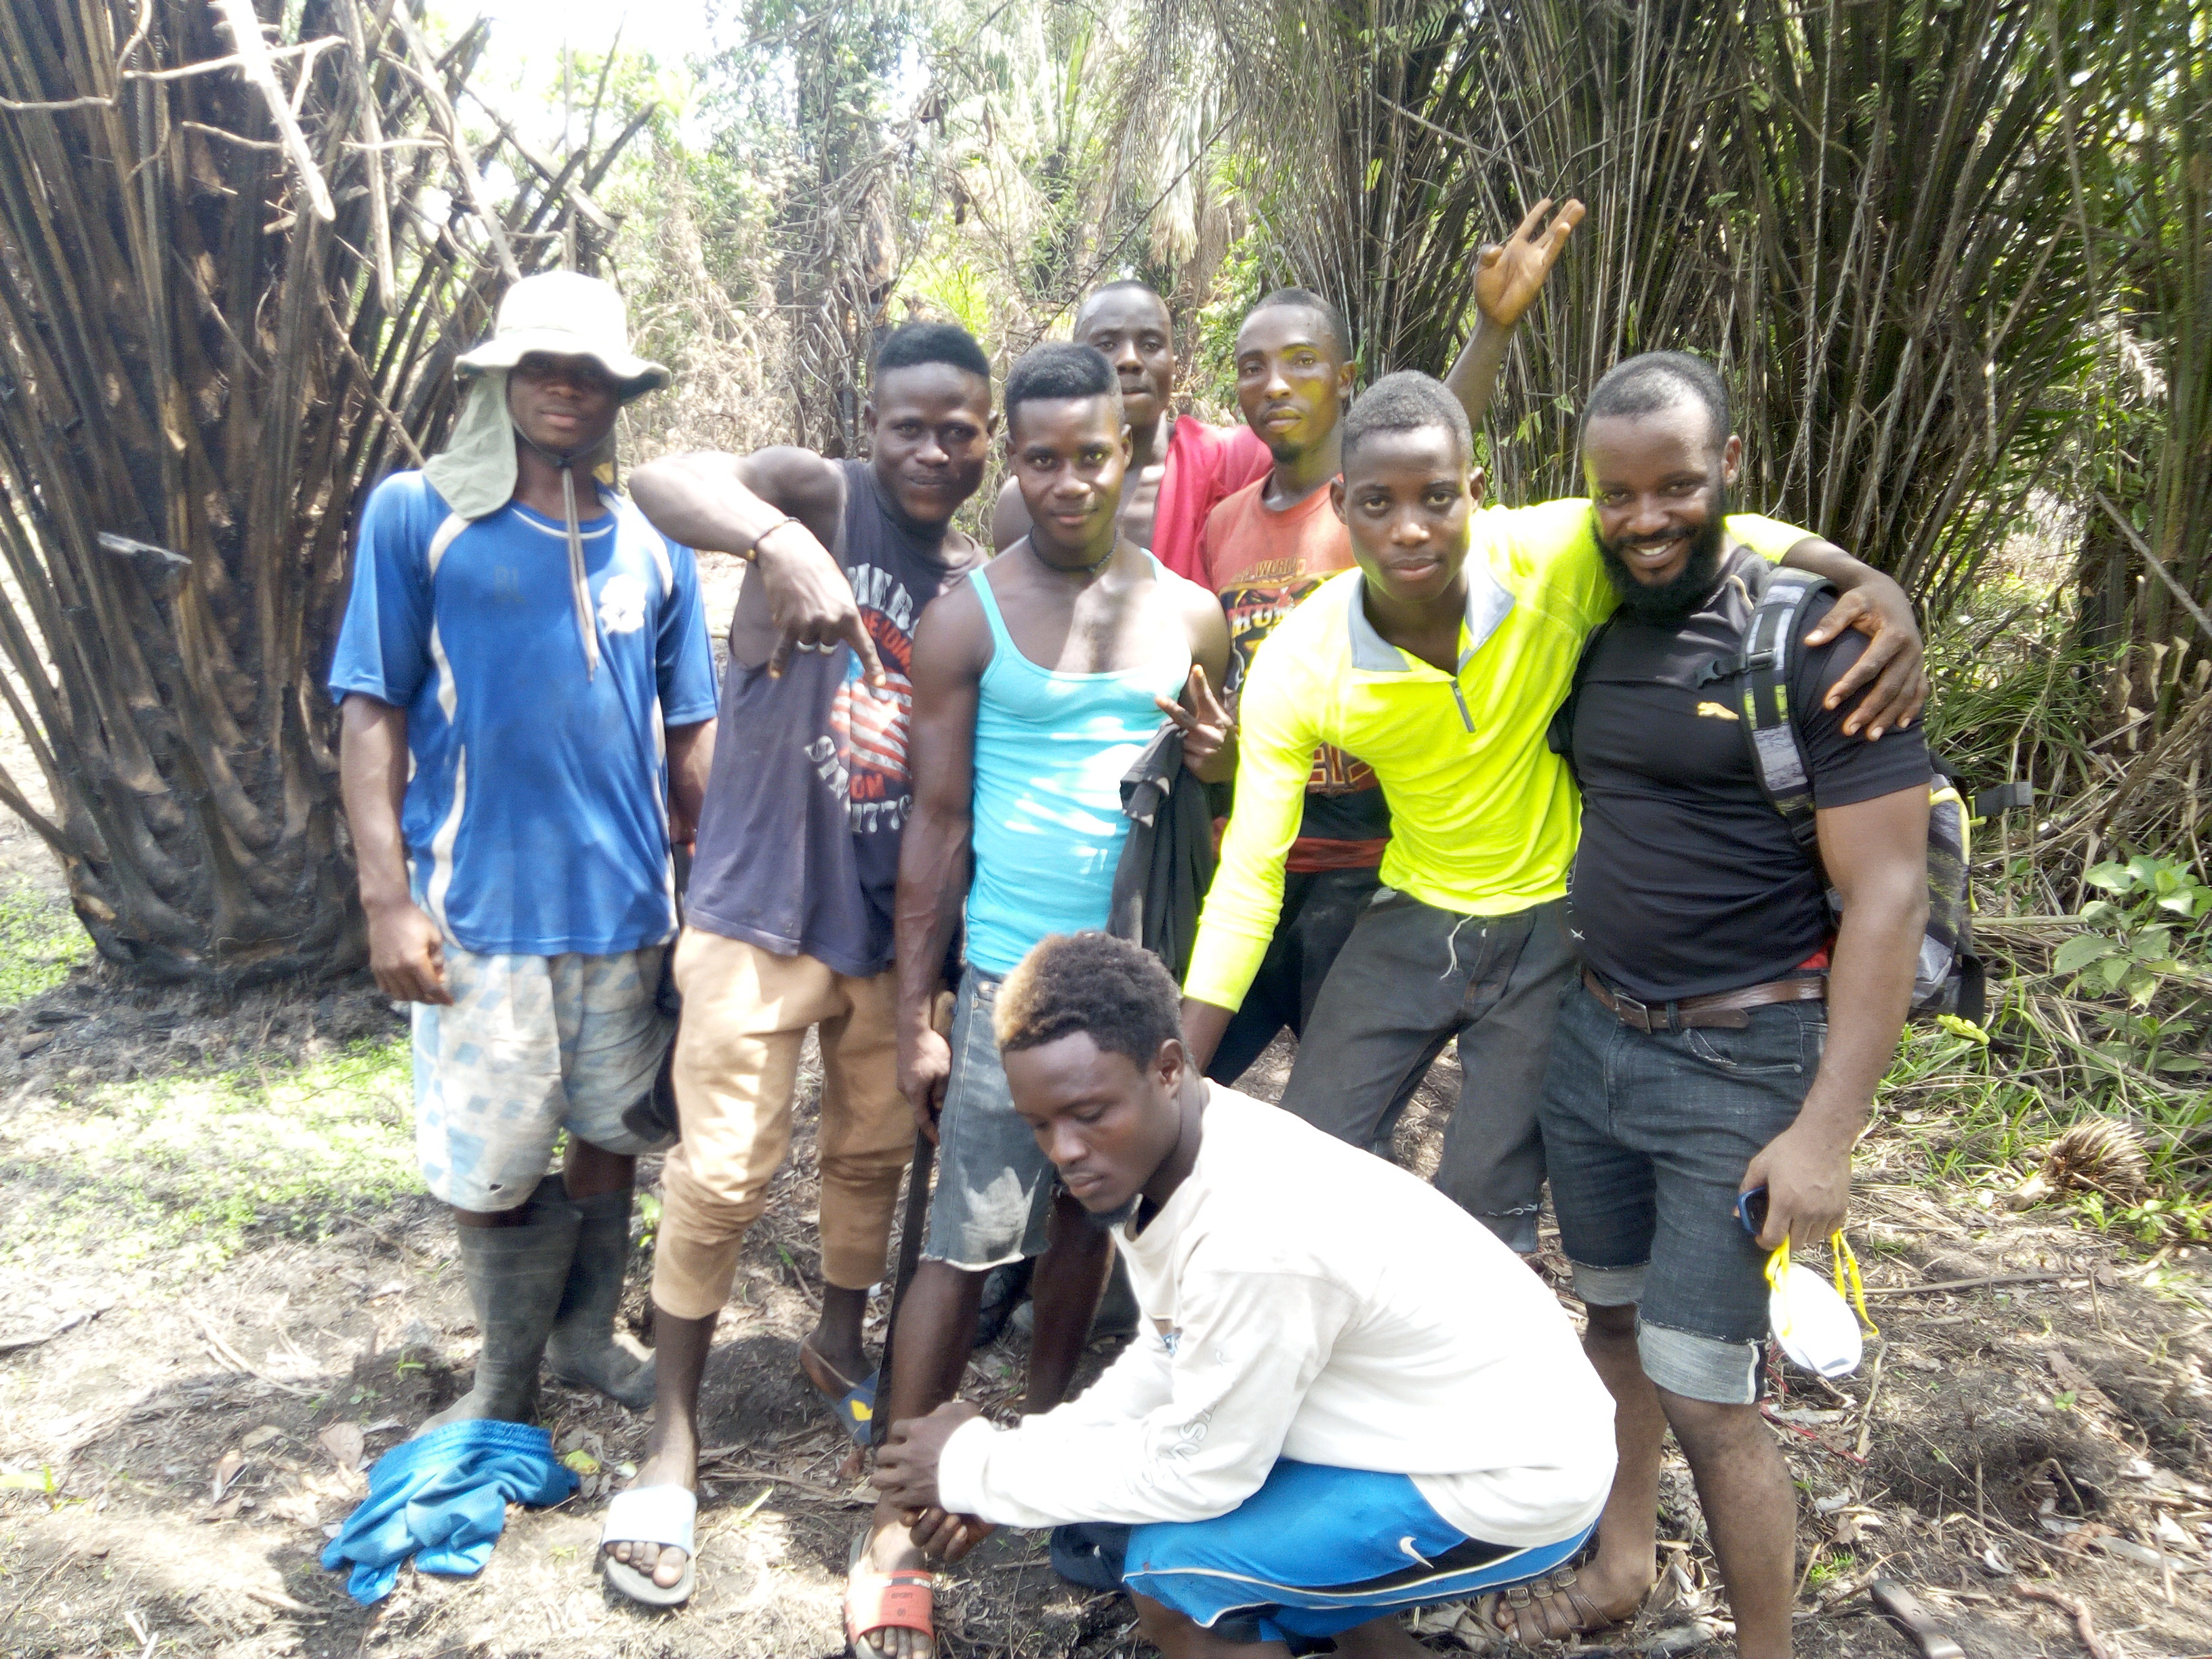 This is a photo of some of the local workers hired to help clear land and help carry bamboo poles to build the nursery.